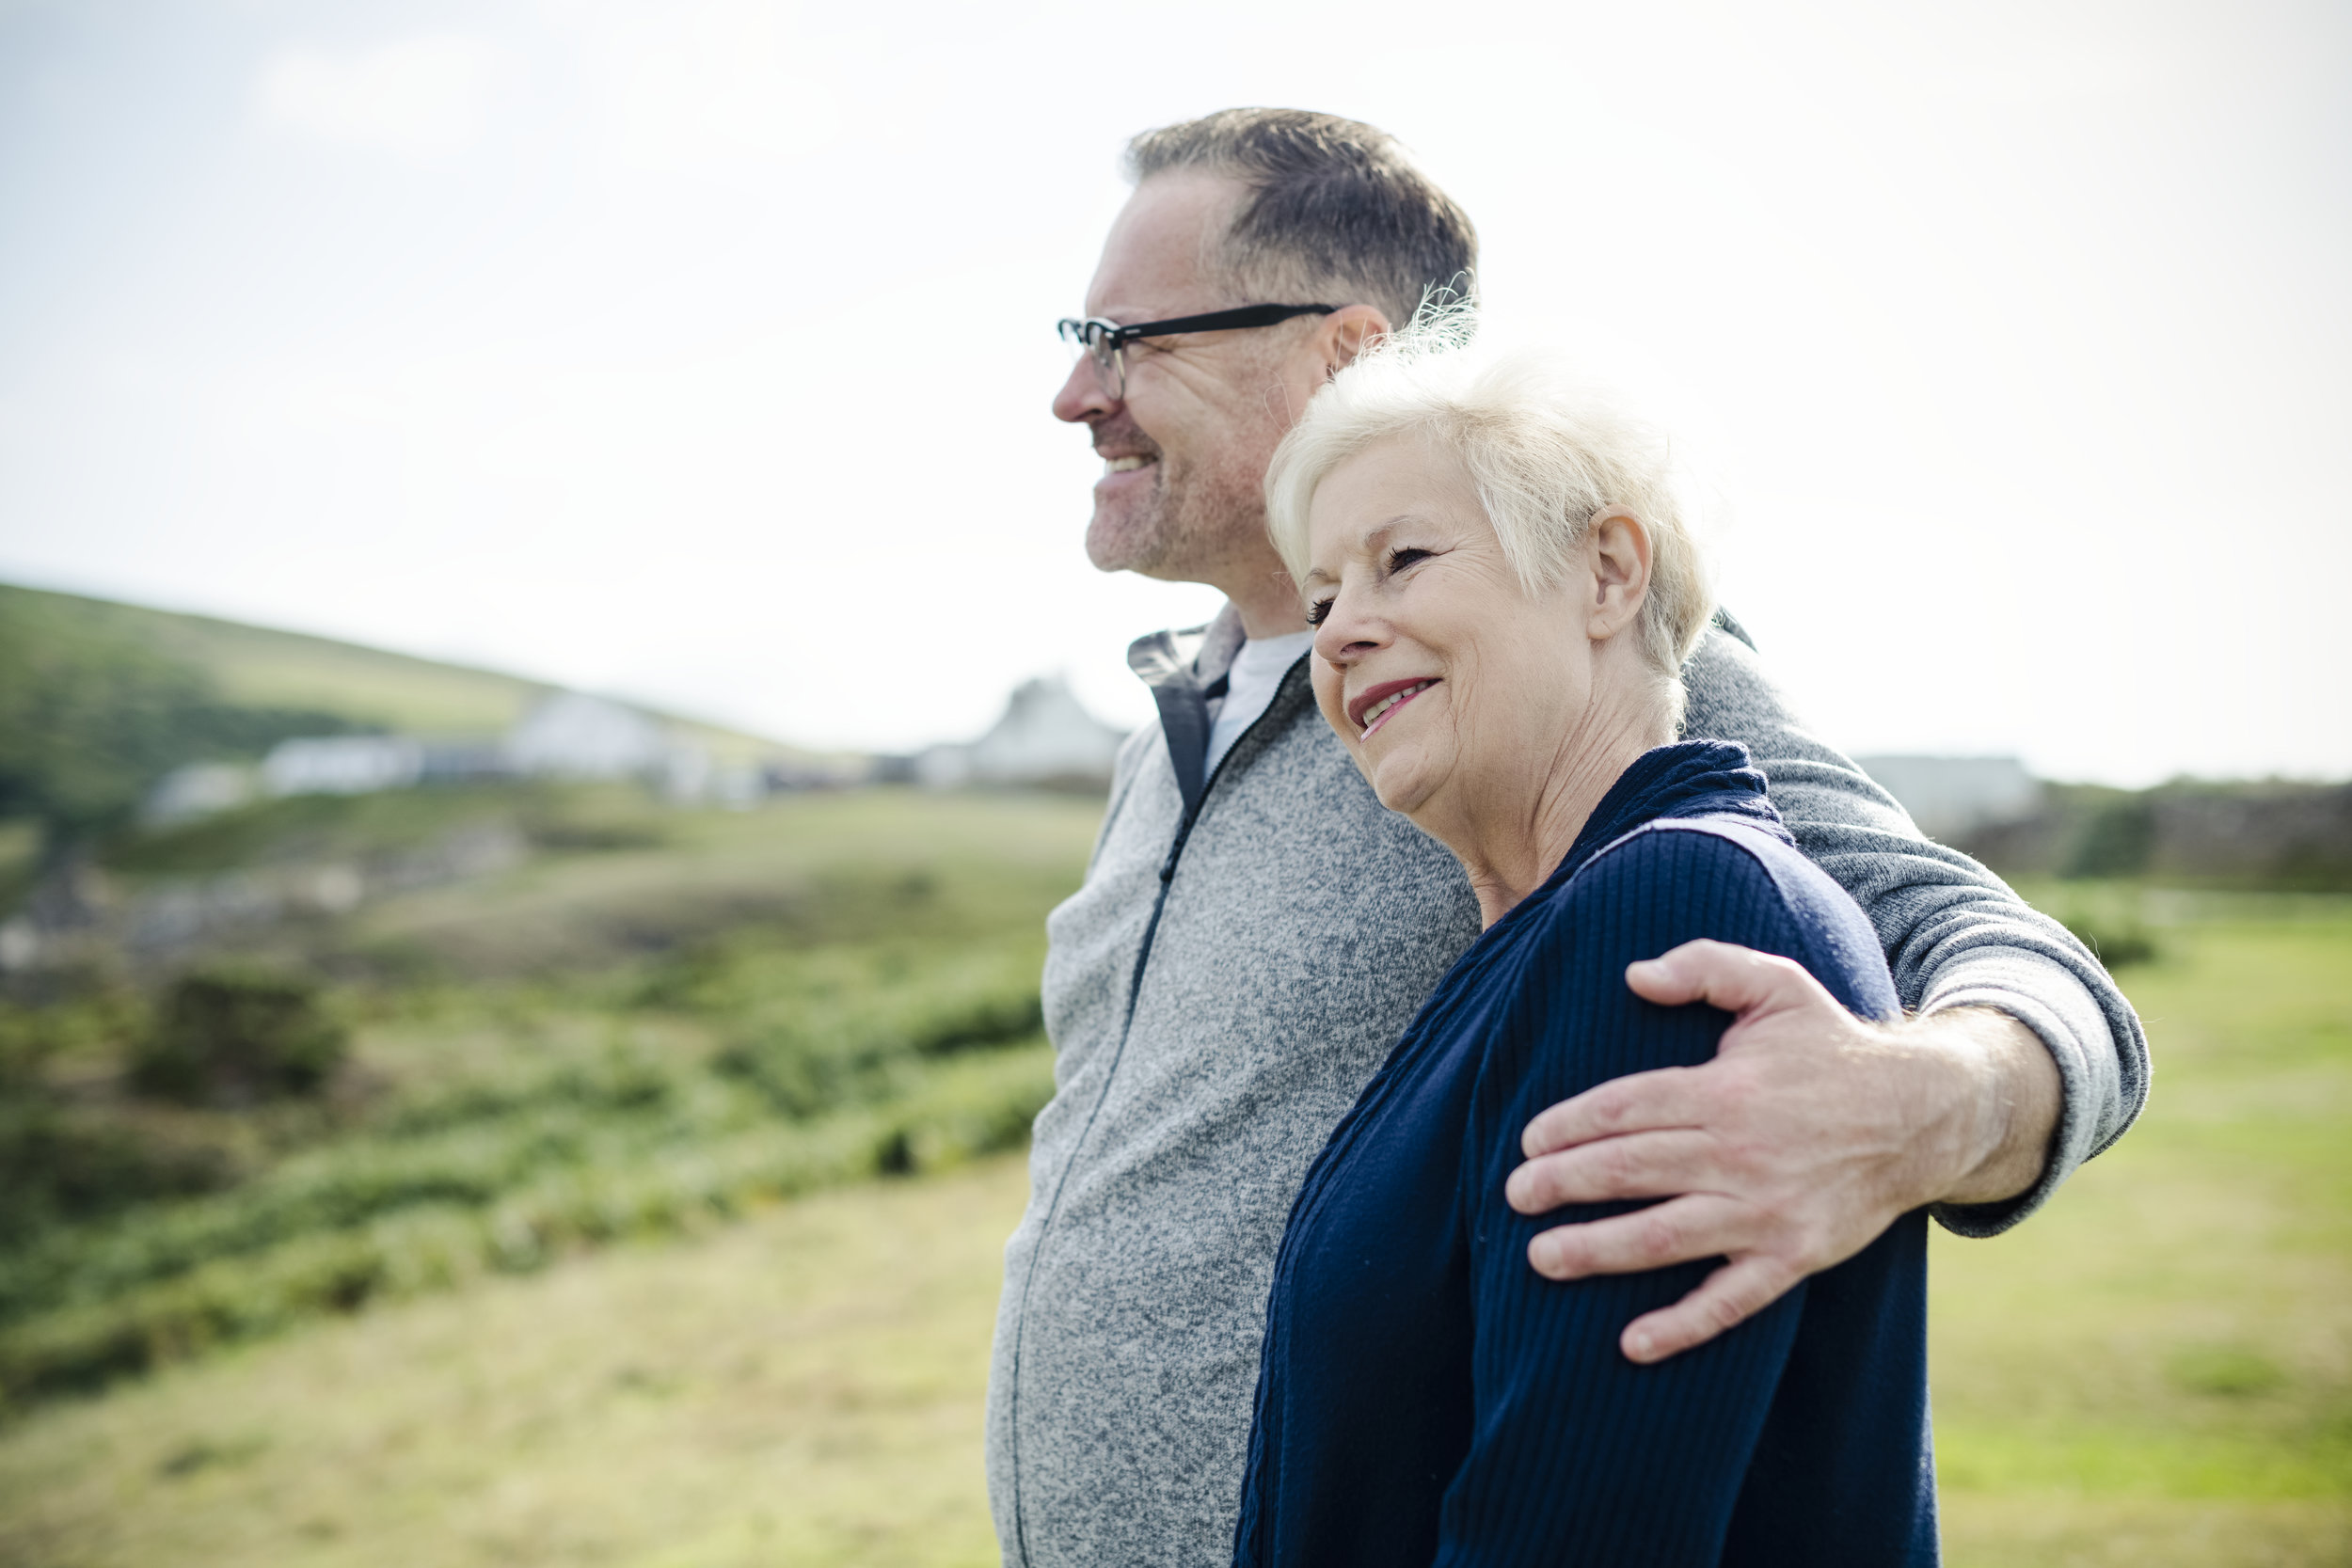 Residents Rights in an Adult Care Home - The rights of residents in assisted living facilities are codified in N.C. General Statute with the intent of promoting and protecting each resident's civil, religious, and human rights while they reside in an assisted living facility.